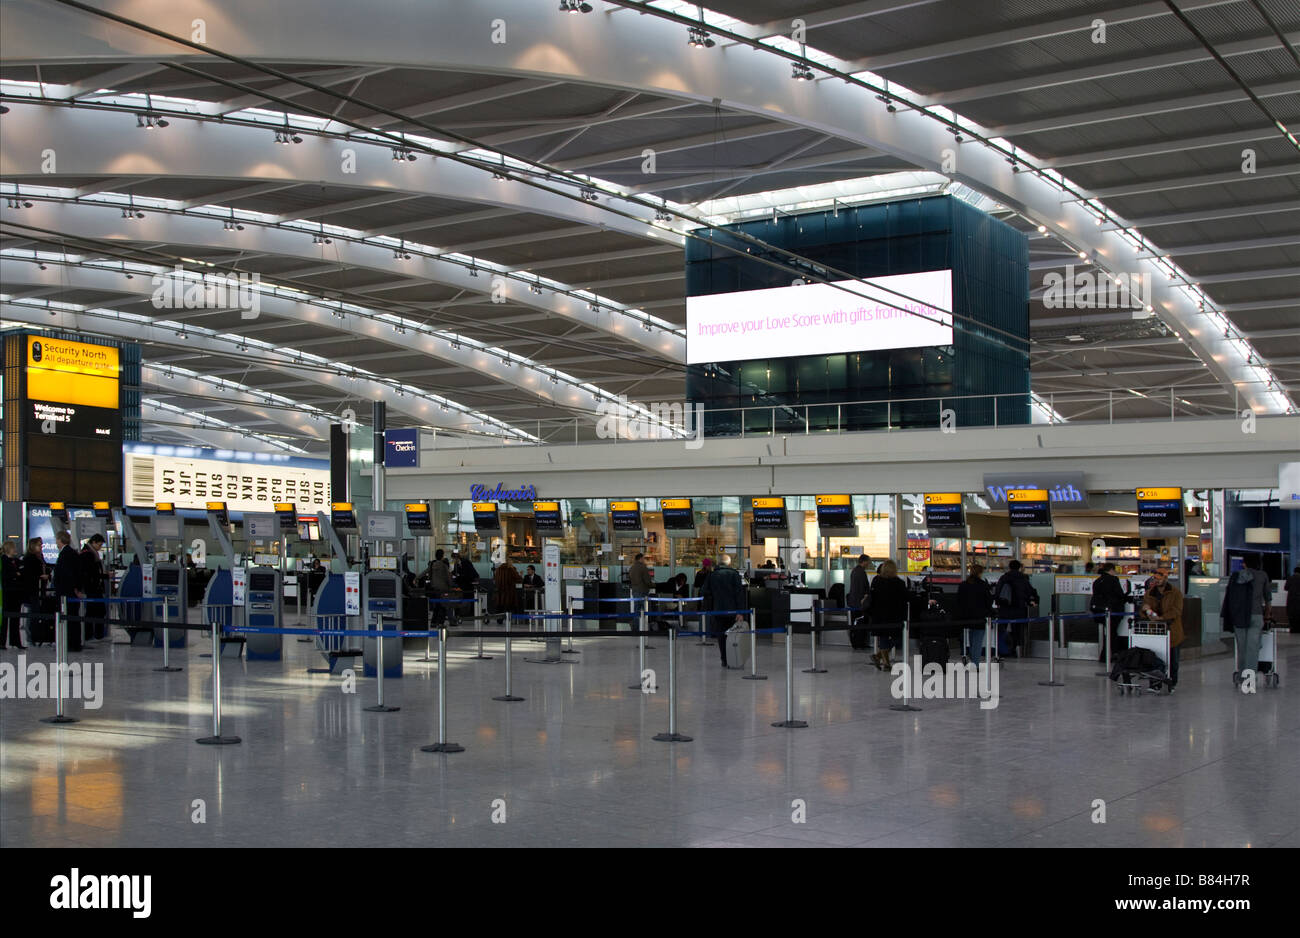 Heathrow Airport Terminal 5 Check-in Hall - London - Stock Image